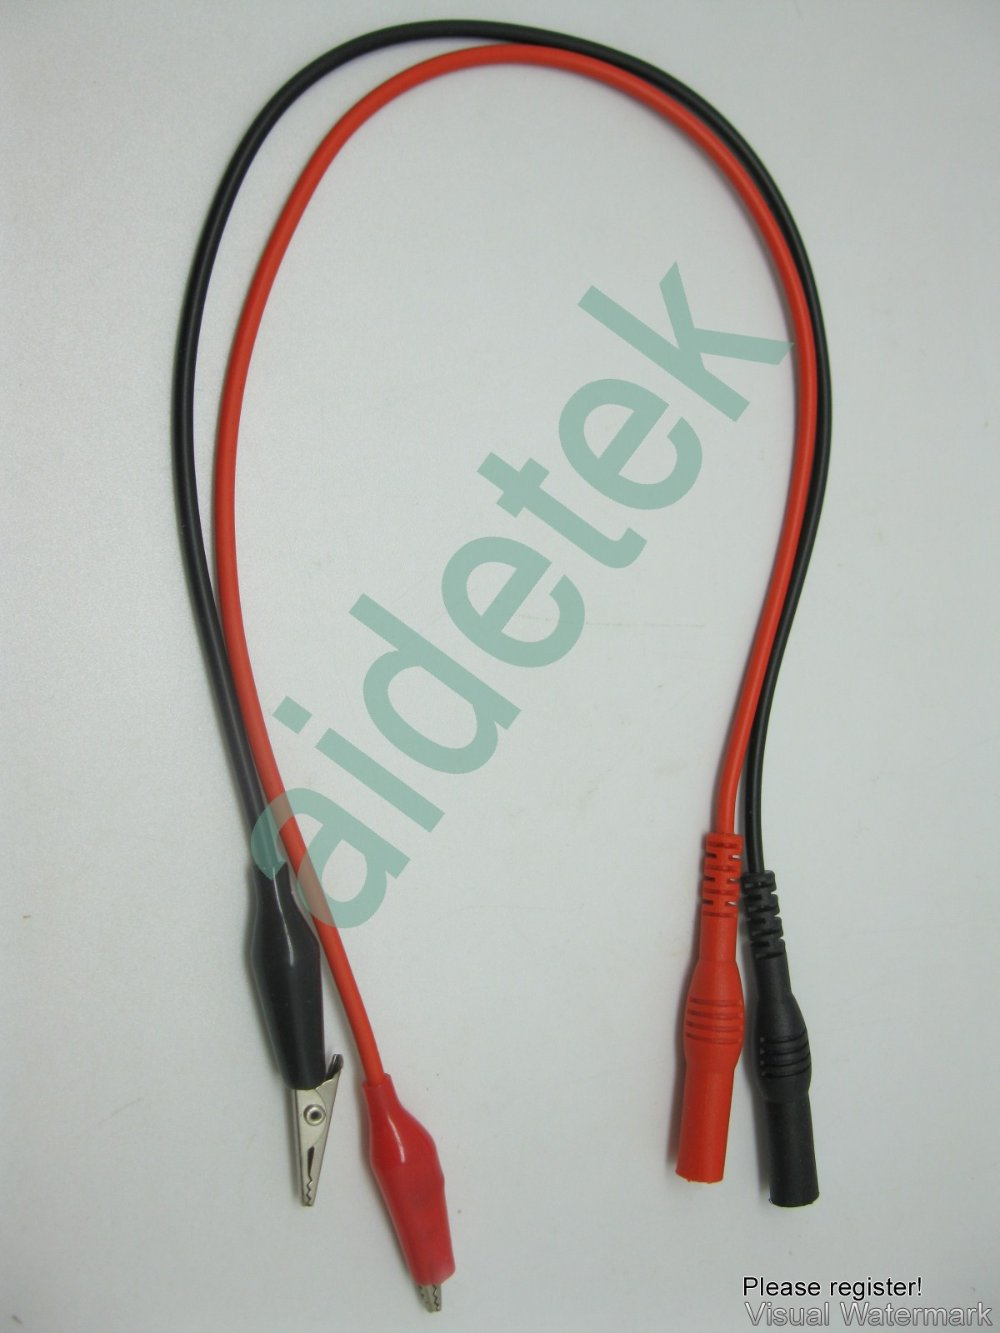 Insulated Alligator clips test leads wire banana plug 4 FLUKE DMM ...